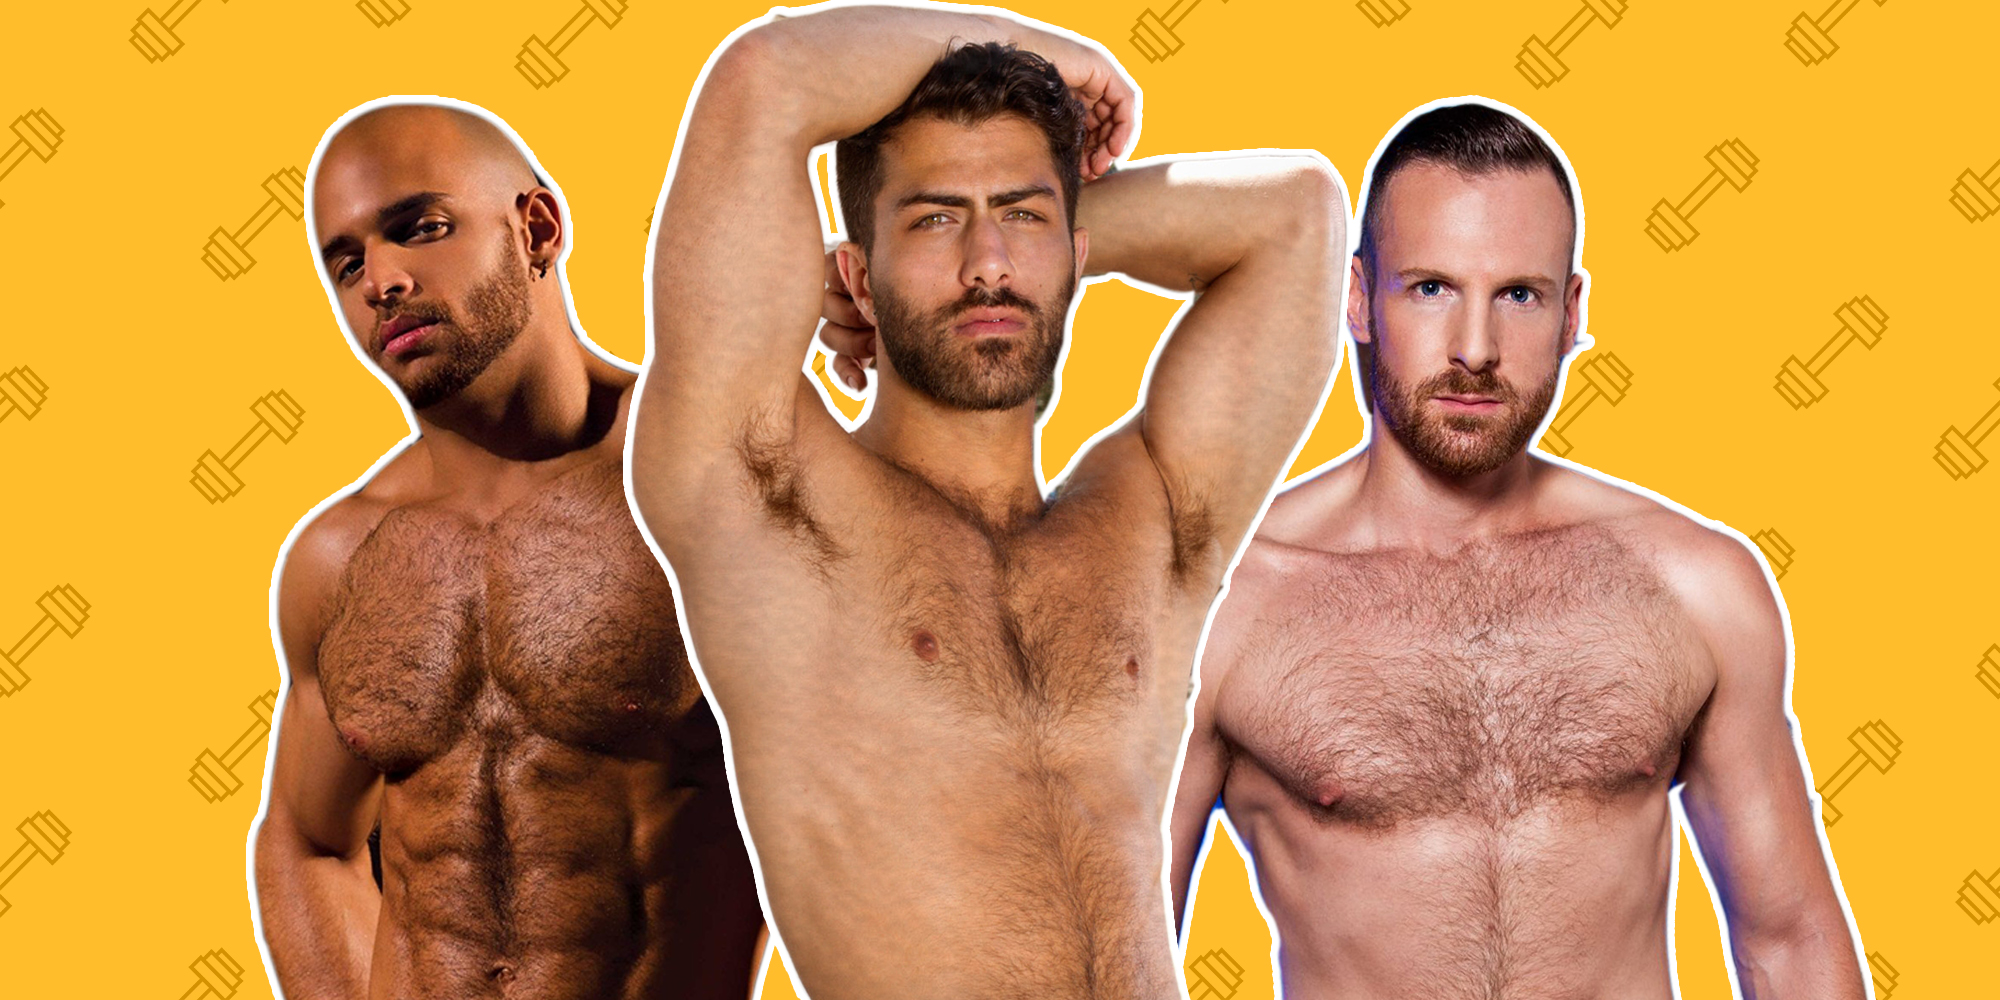 6 of Our Favorite Gay Porn Stars Reveal Their Best Workout and Dieting Tips